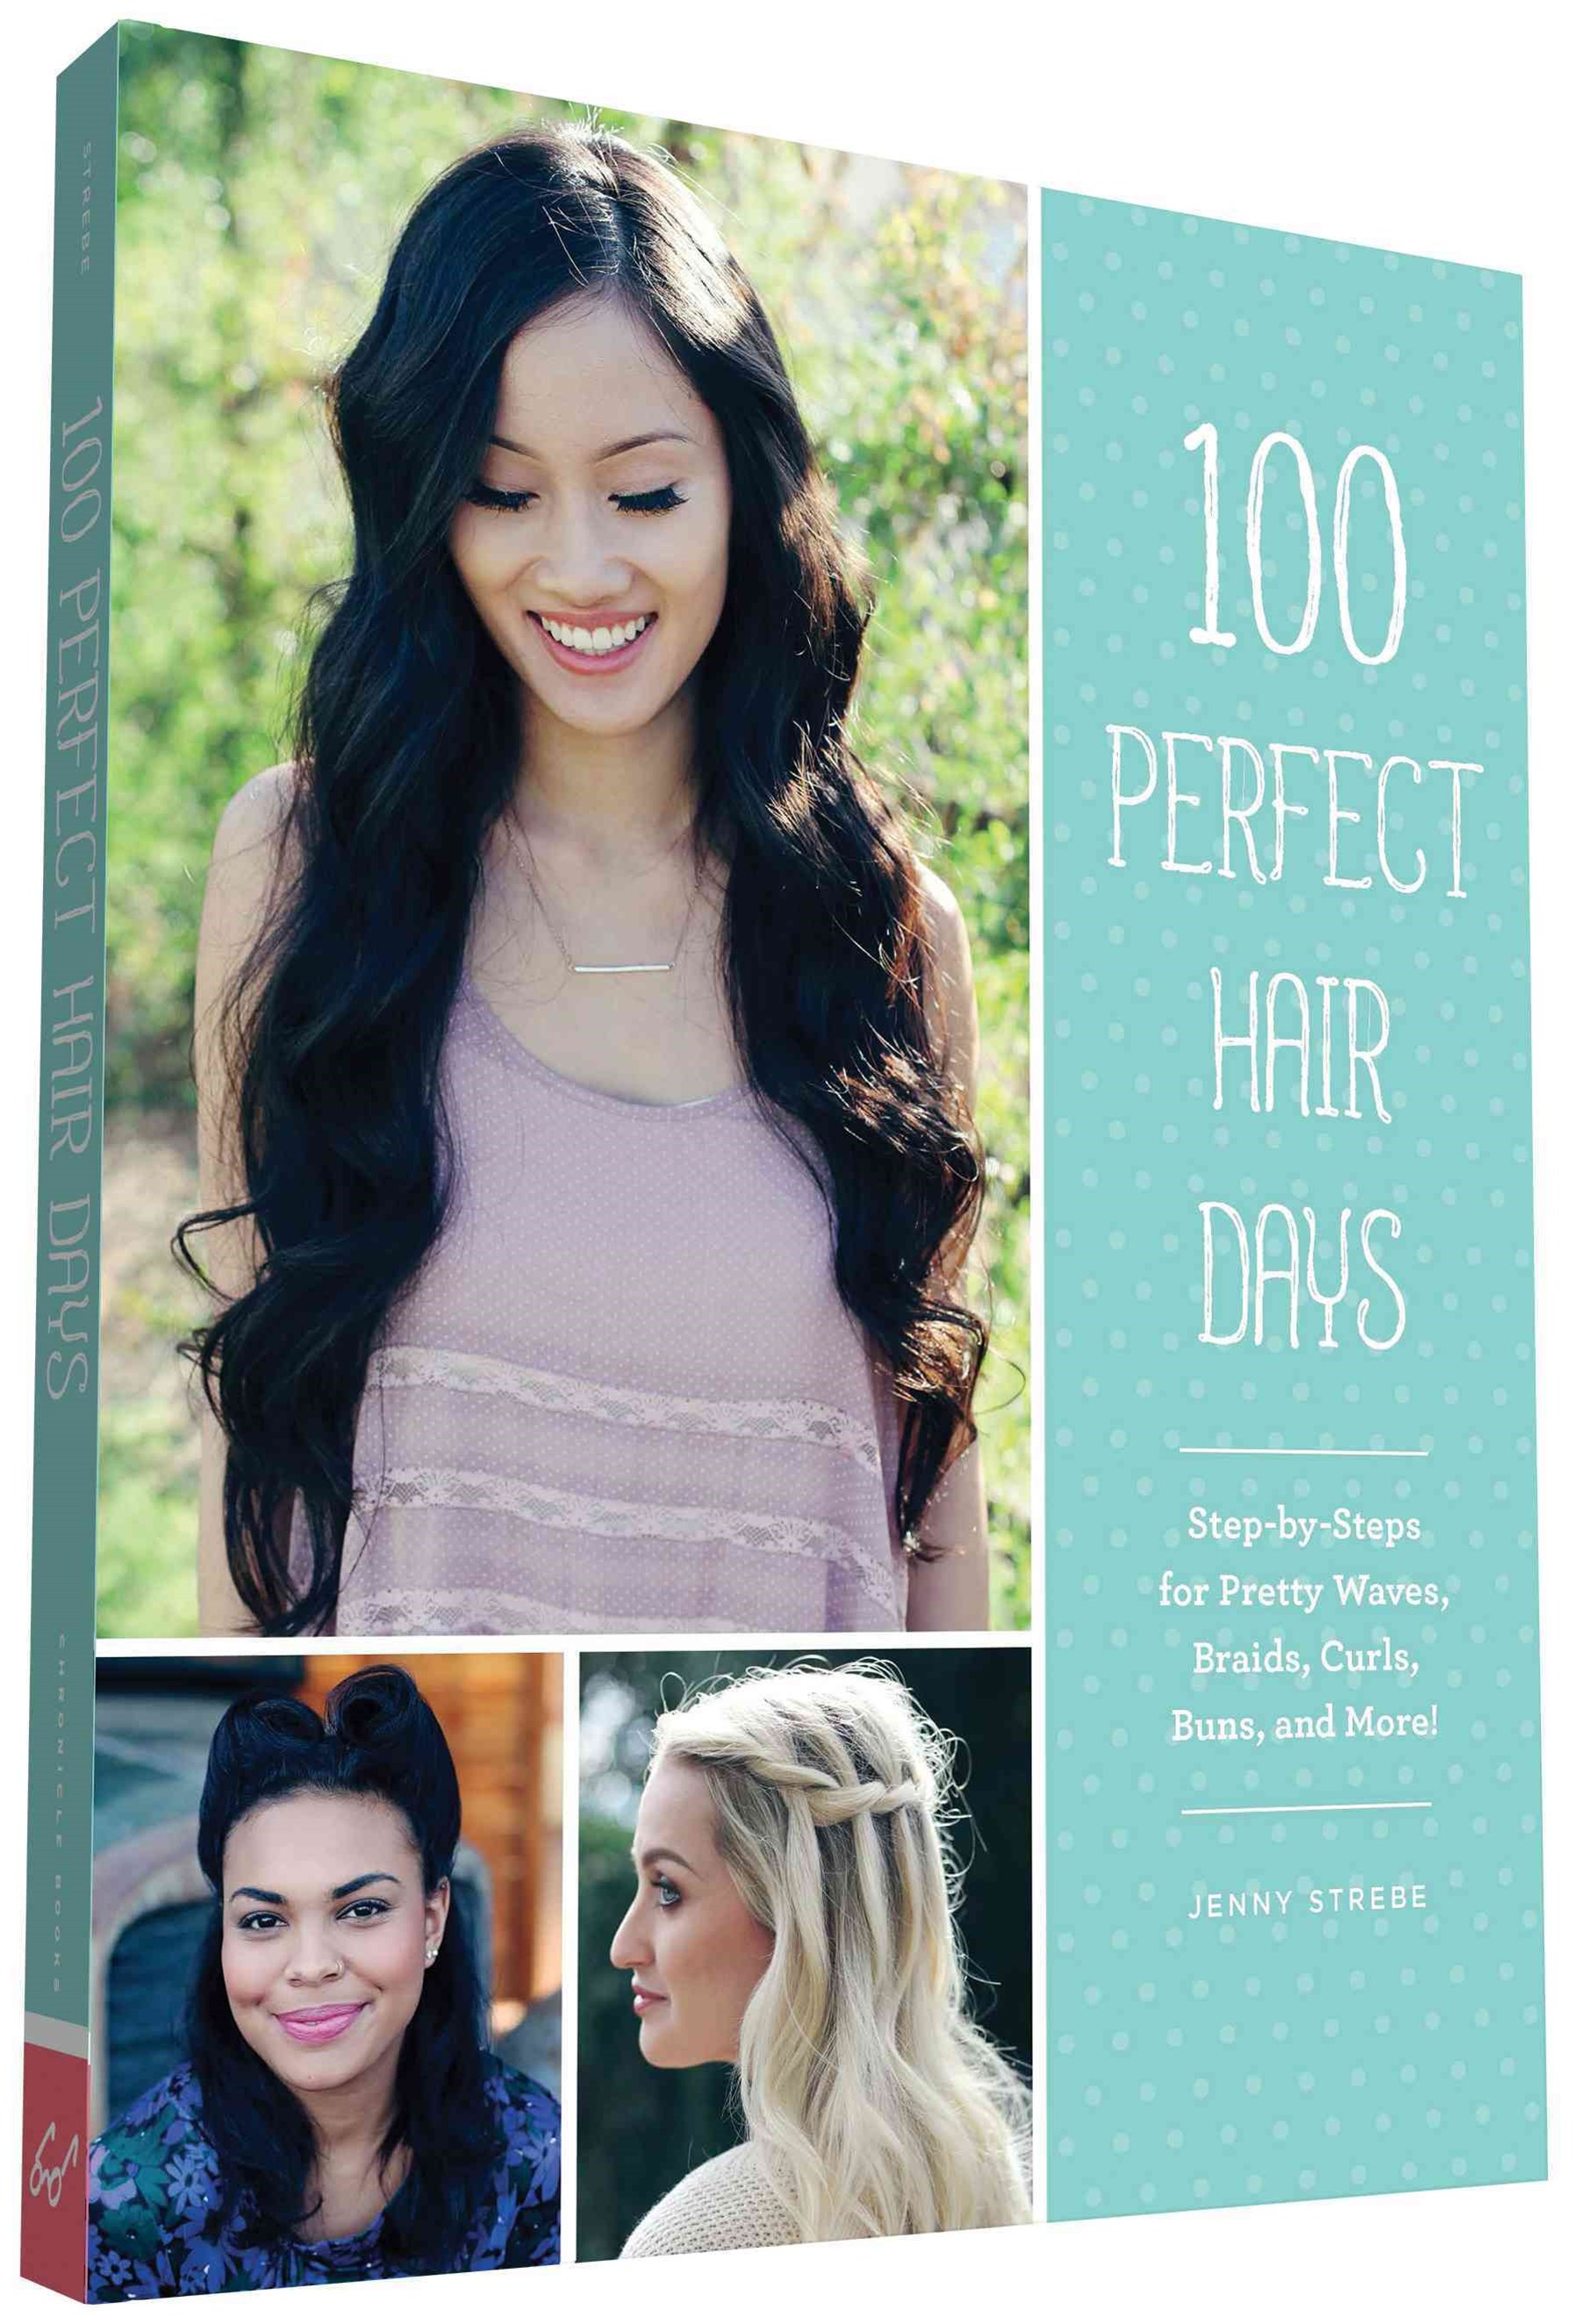 100 Perfect Hair Days